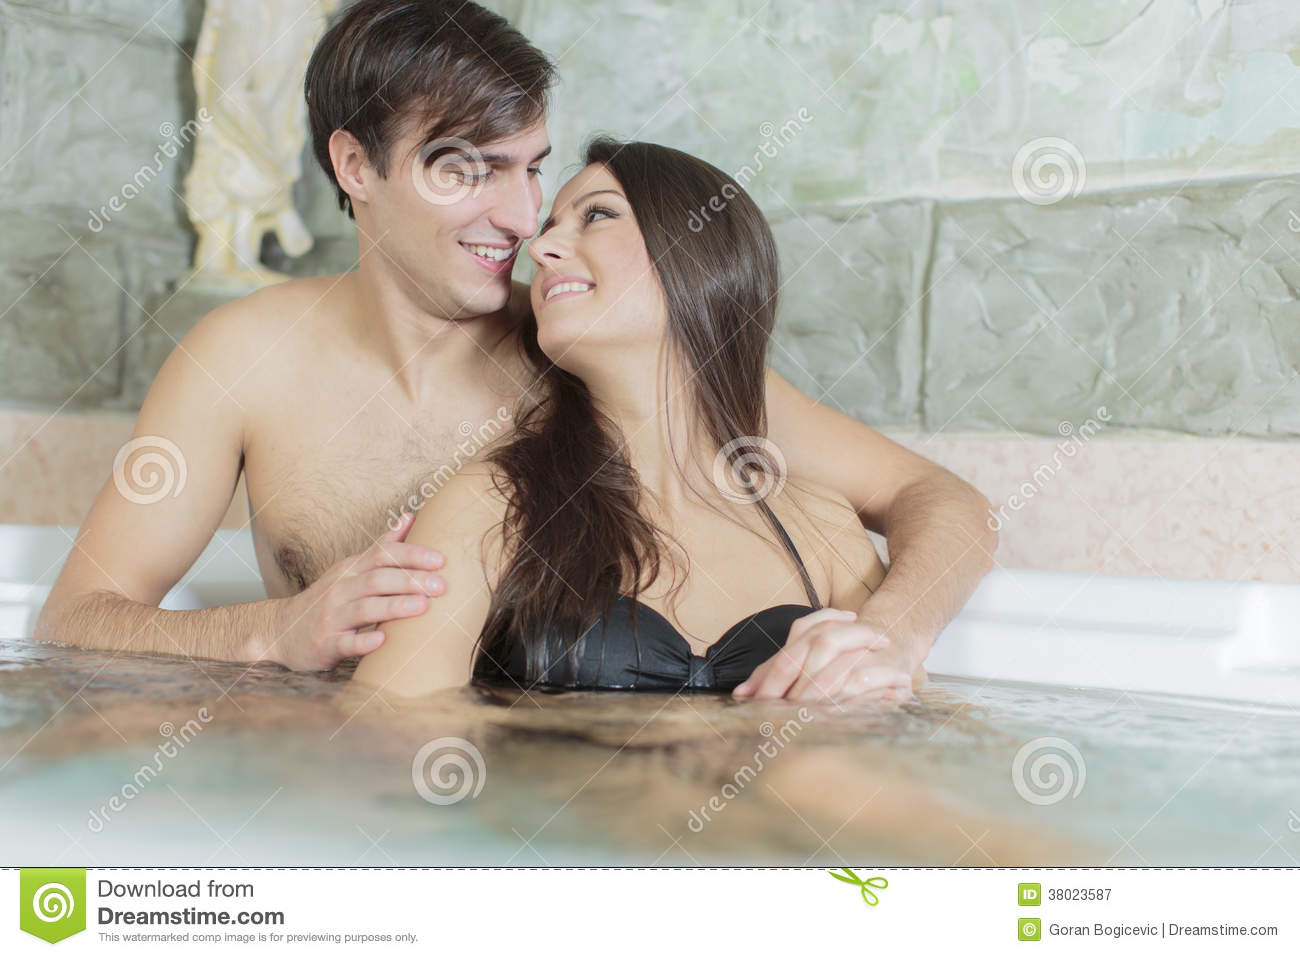 Free porn hot couples #11